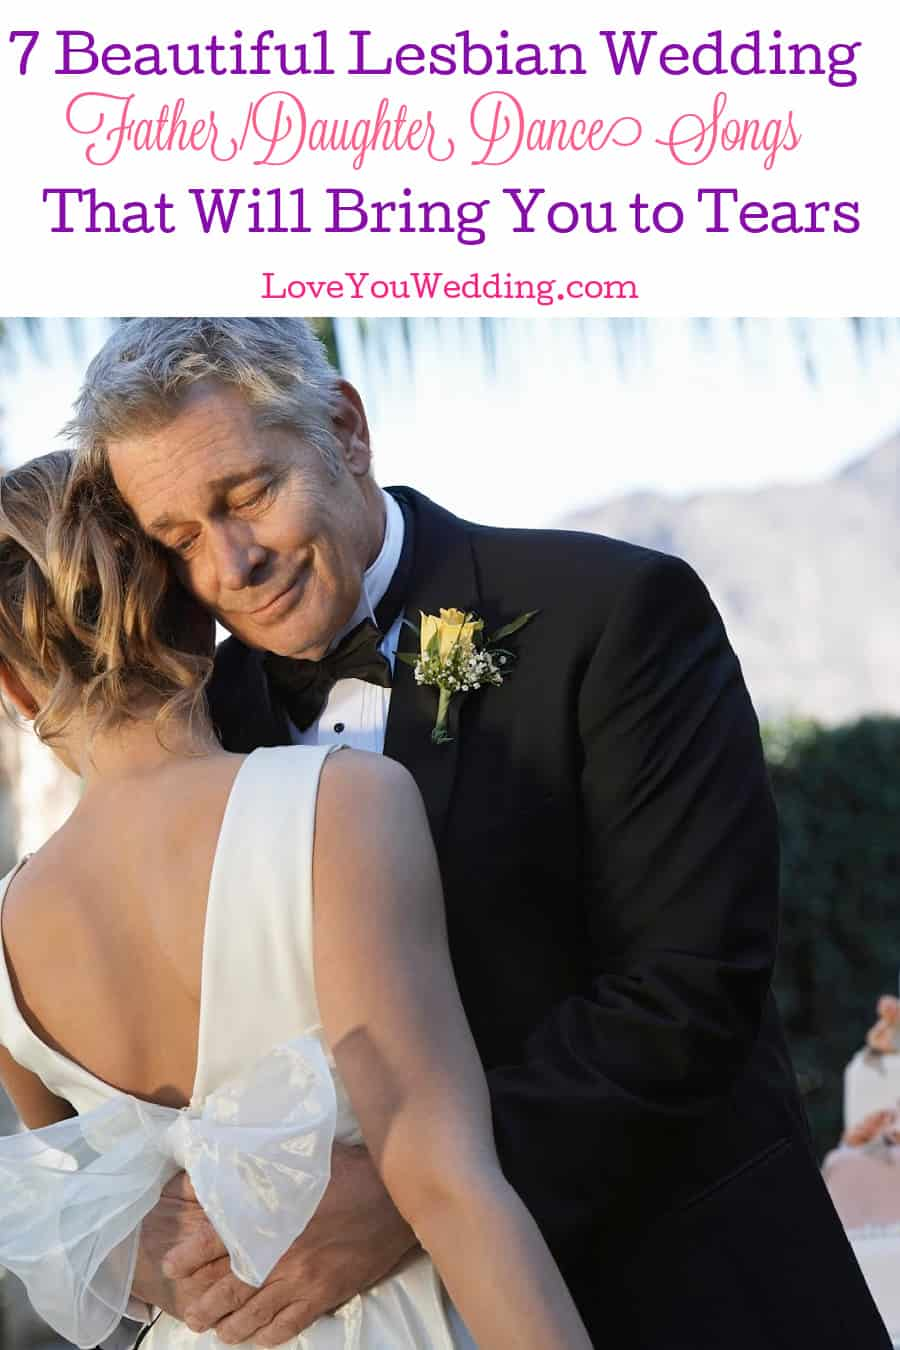 If these beautiful lesbian wedding father-daughter dance songs don't bring tears to your eyes, nothing will! Check them out!